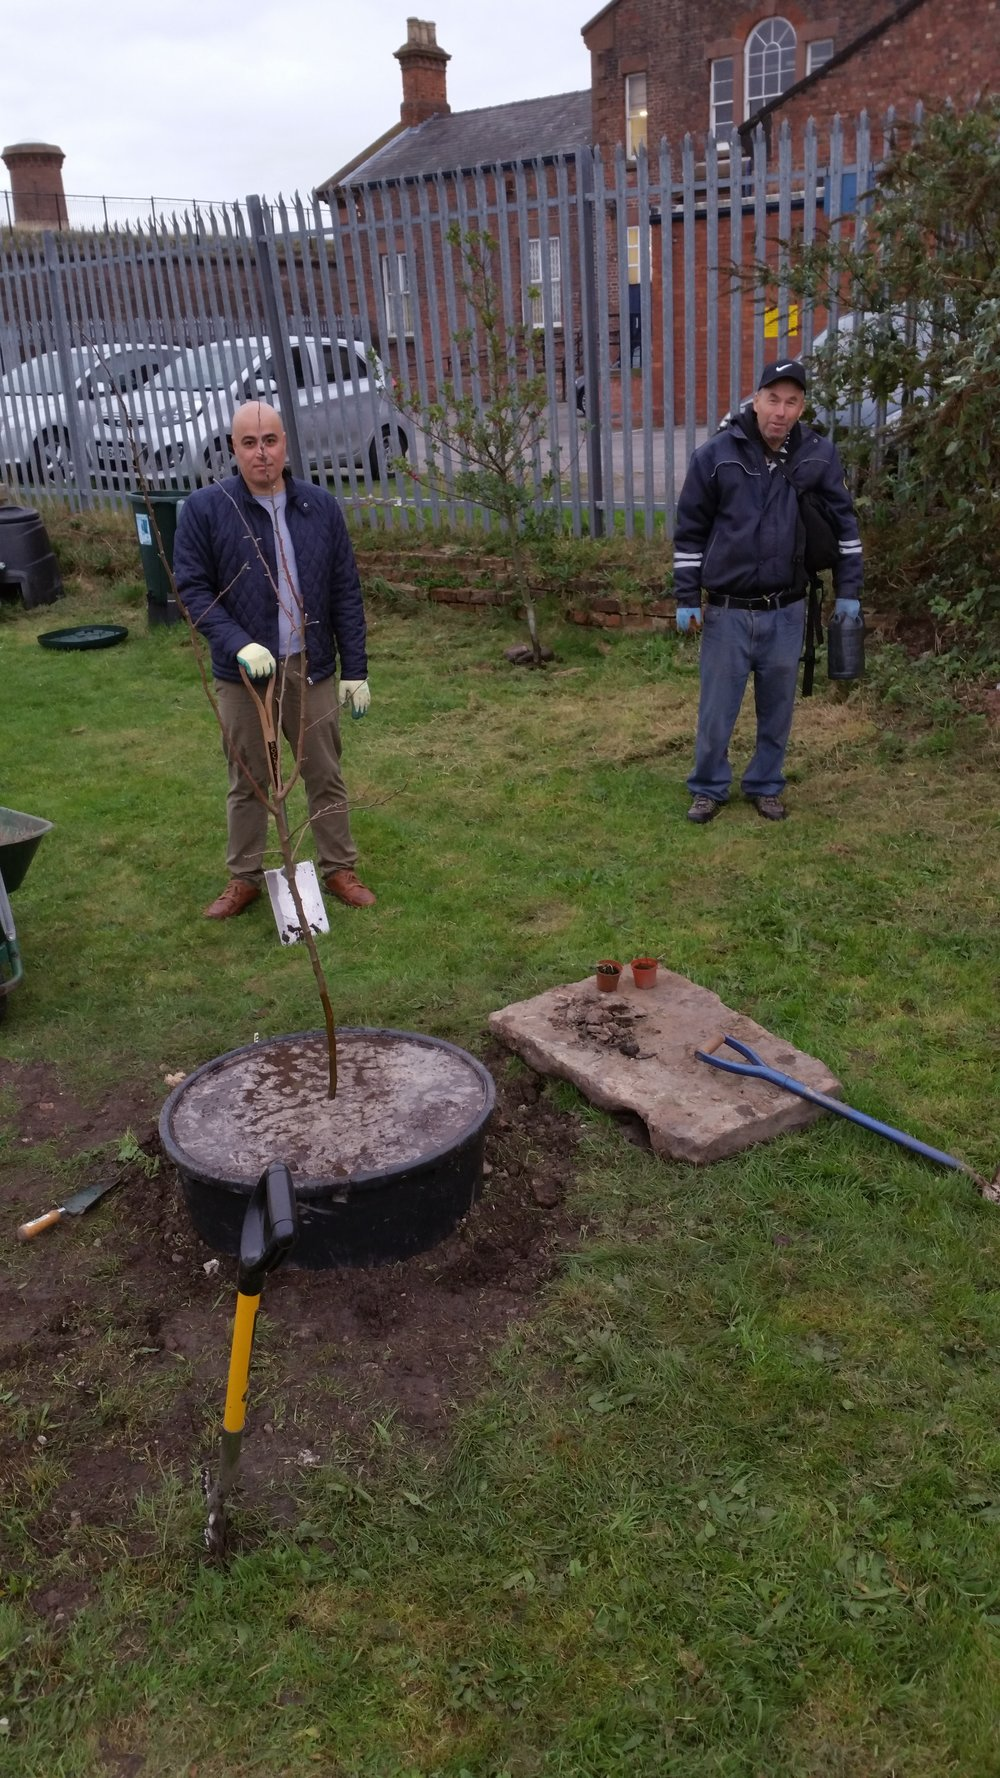 OUR ADULT GARDENING CLUB PLANTING THEIR FIRST APPLE TREE